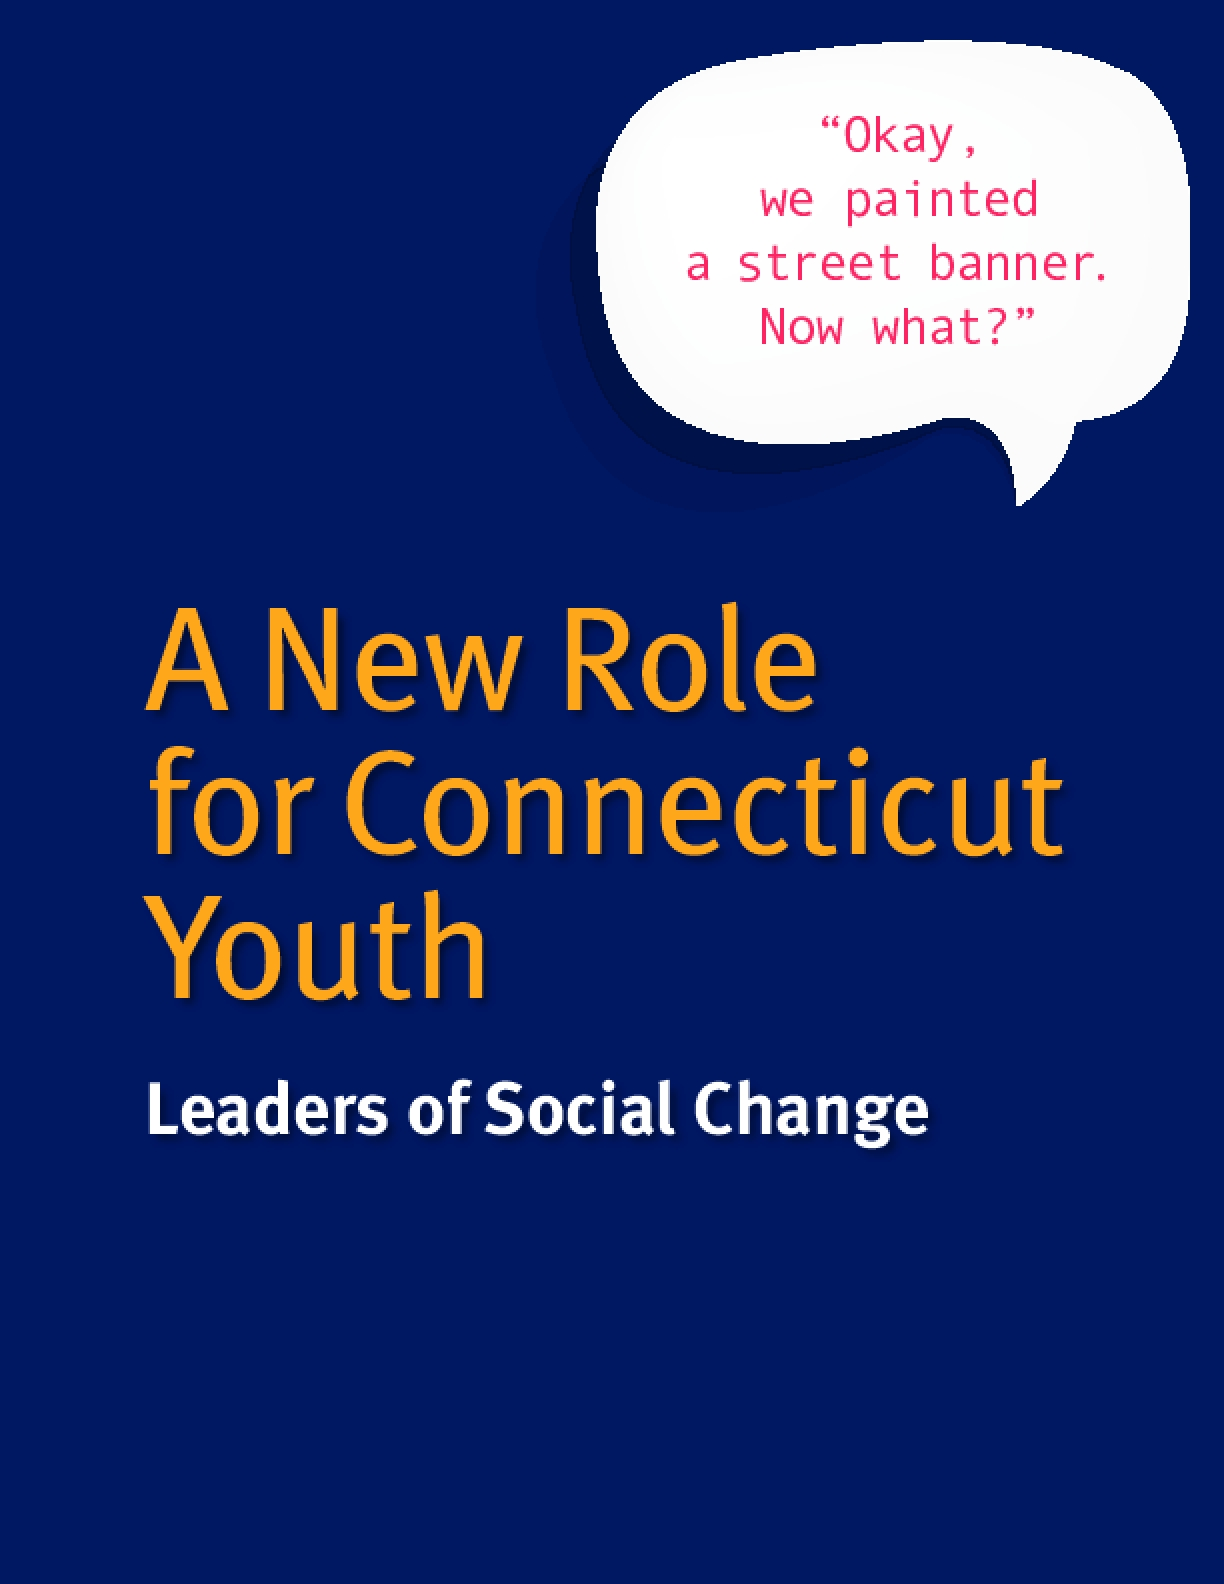 A New Role for Connecticut Youth: Leaders of Social Change